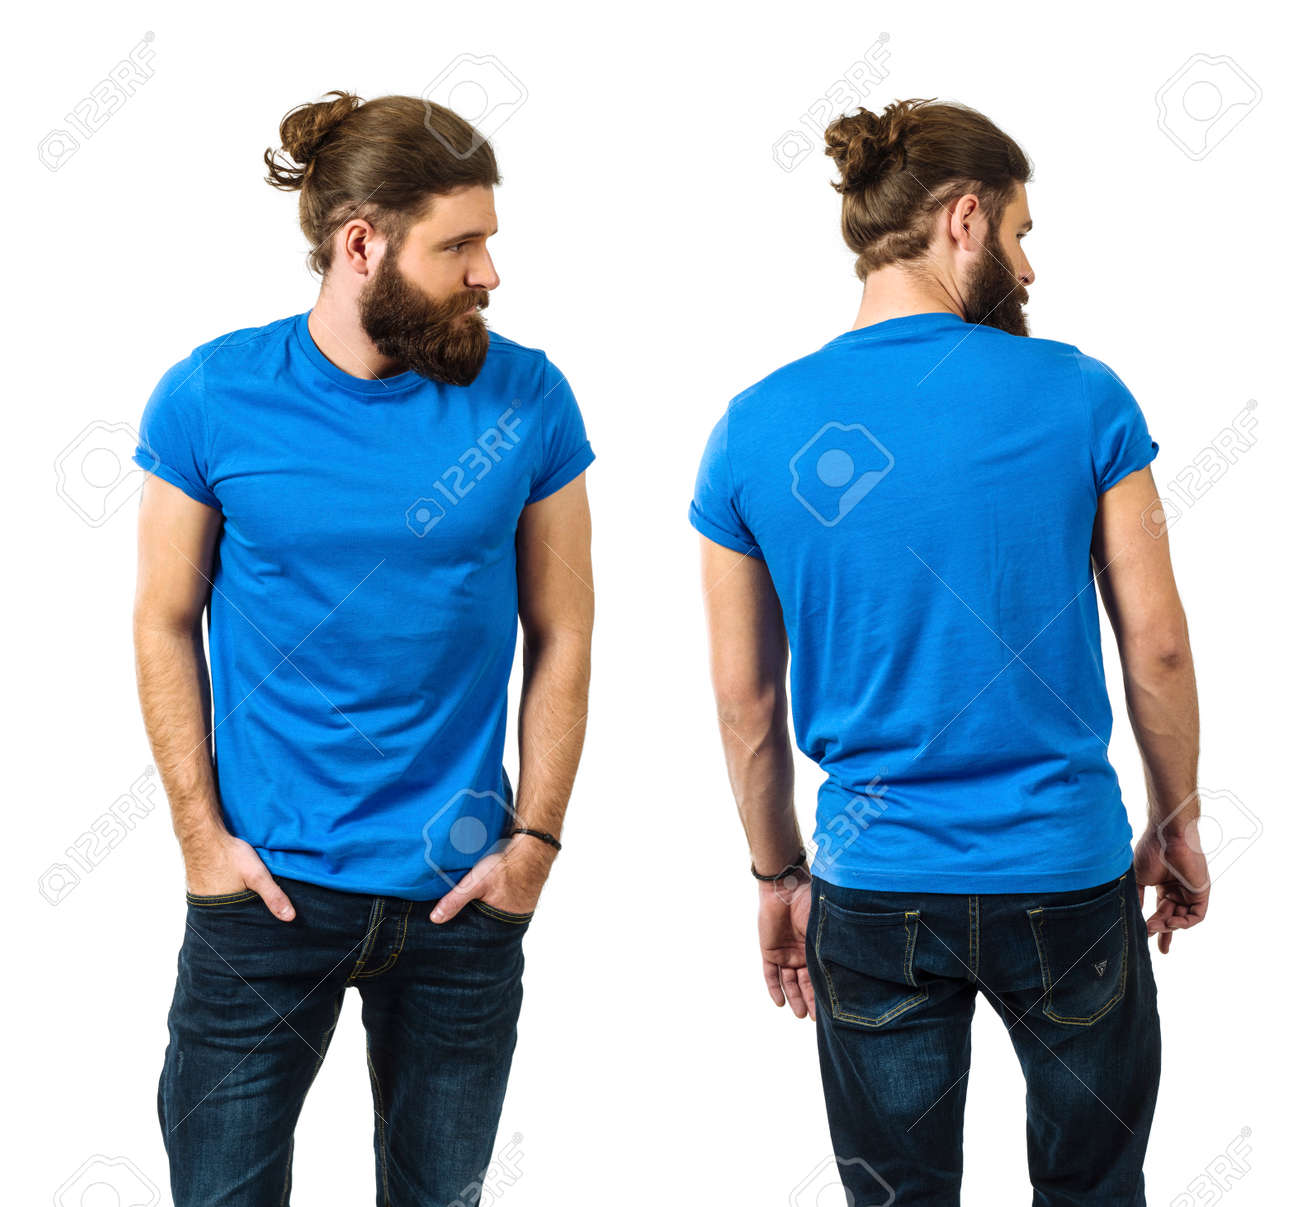 Young man with long hair and beard wearing blank blue shirt, front and back. Ready for your artwork. - 166319801